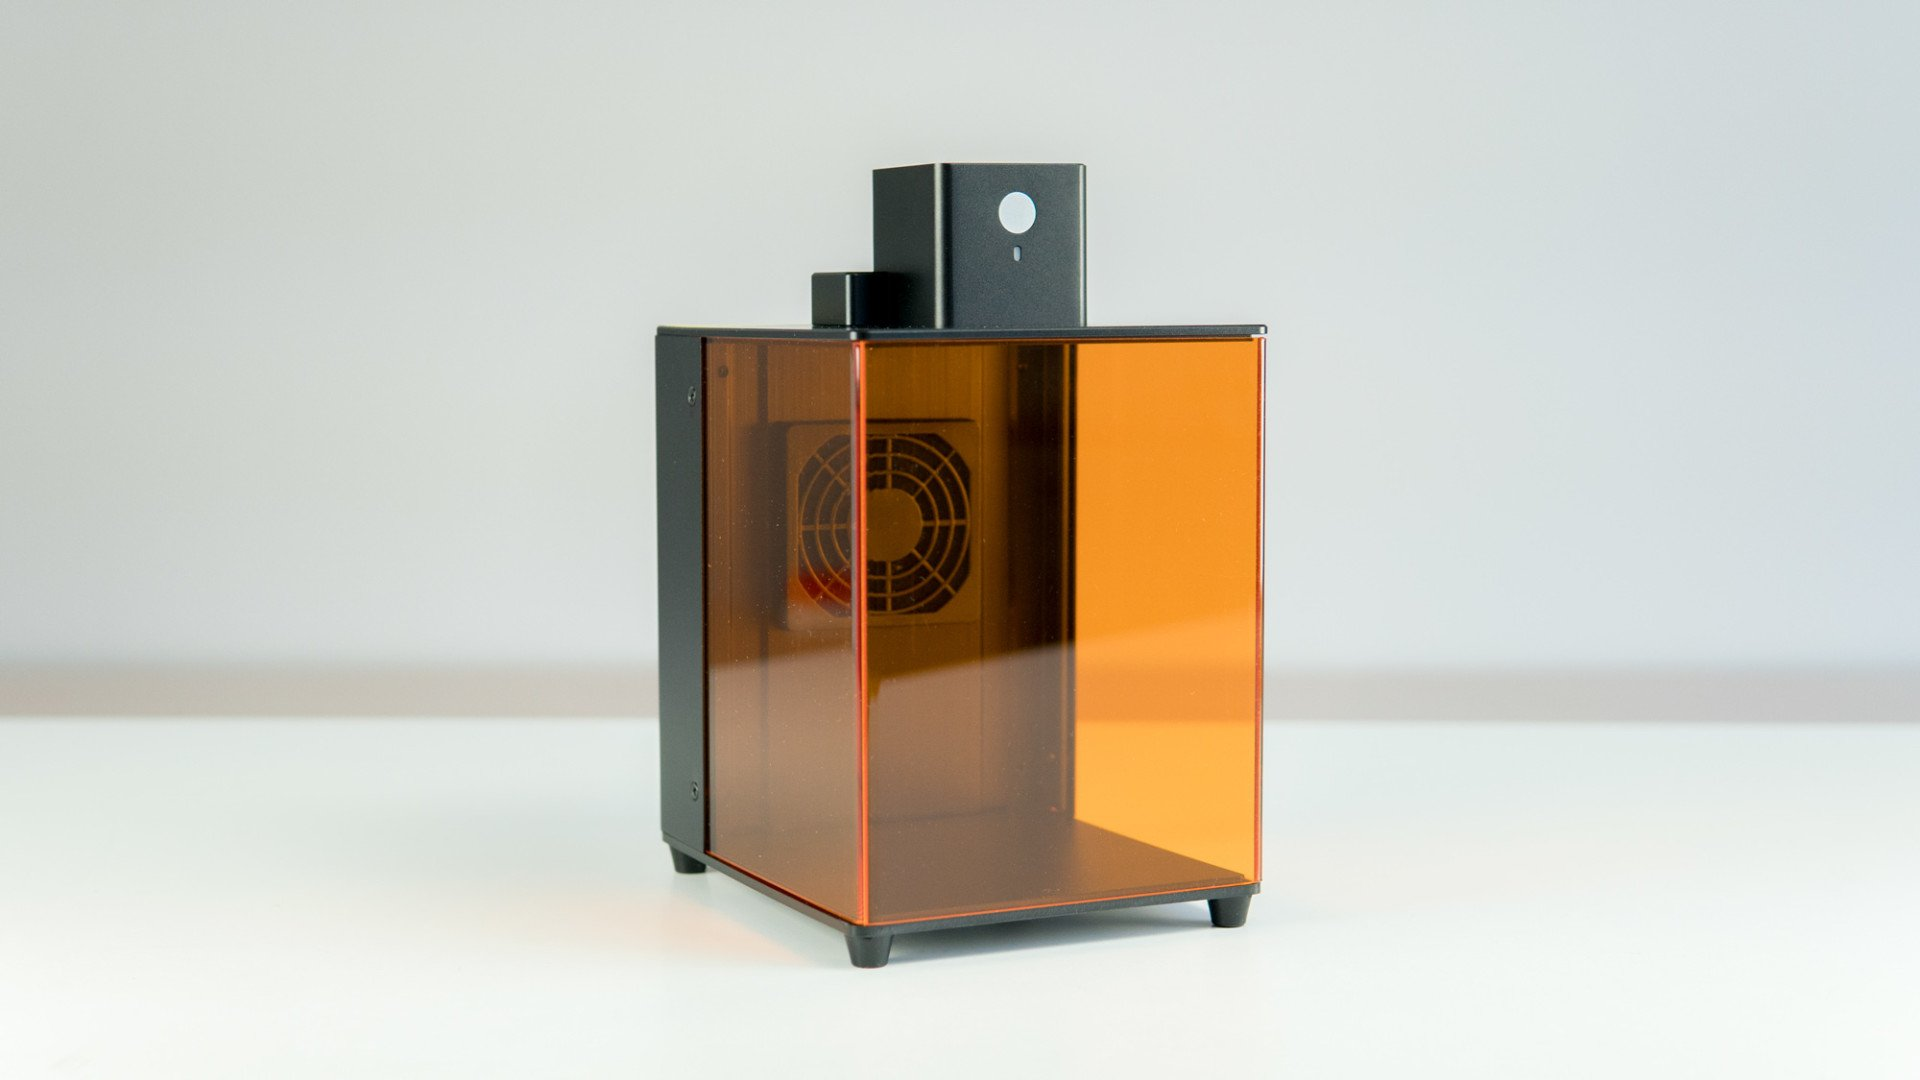 Cubiio Compact Laser Engraver Review: Buggy but Fun | All3DP